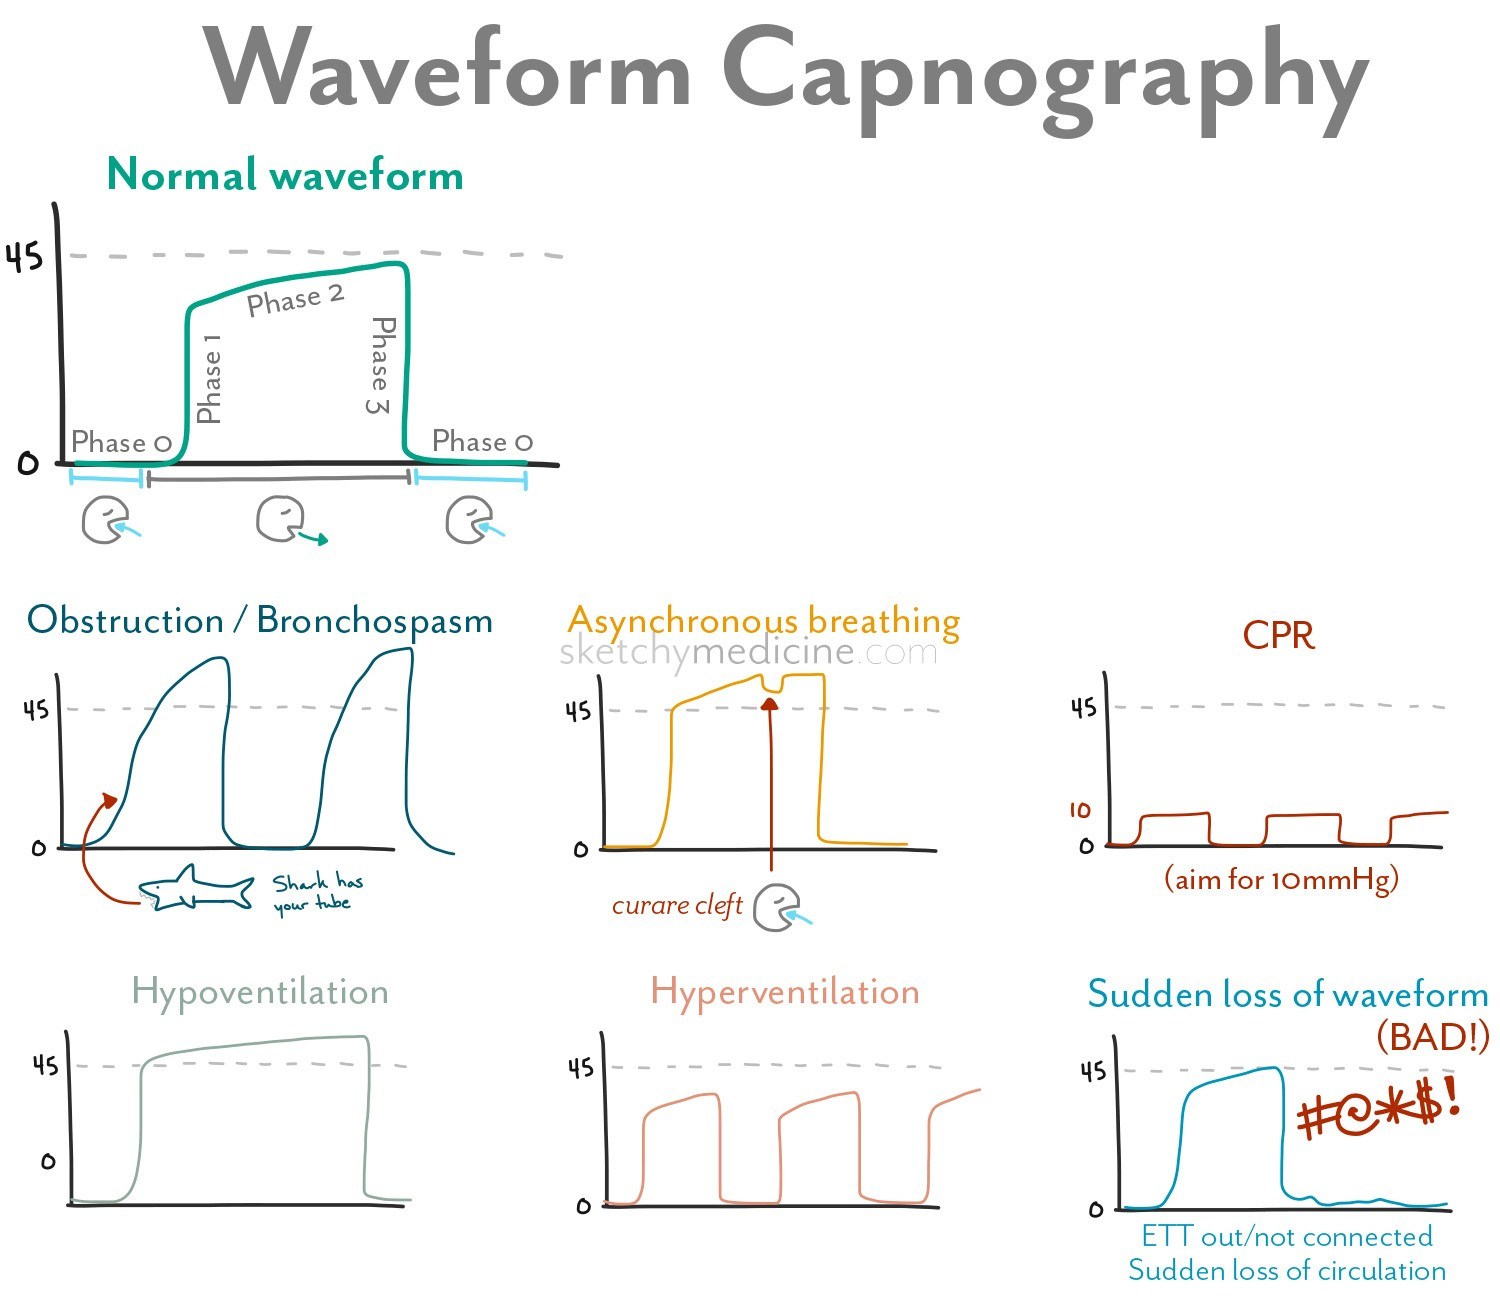 Waveform Capnography Sketchy Medicine